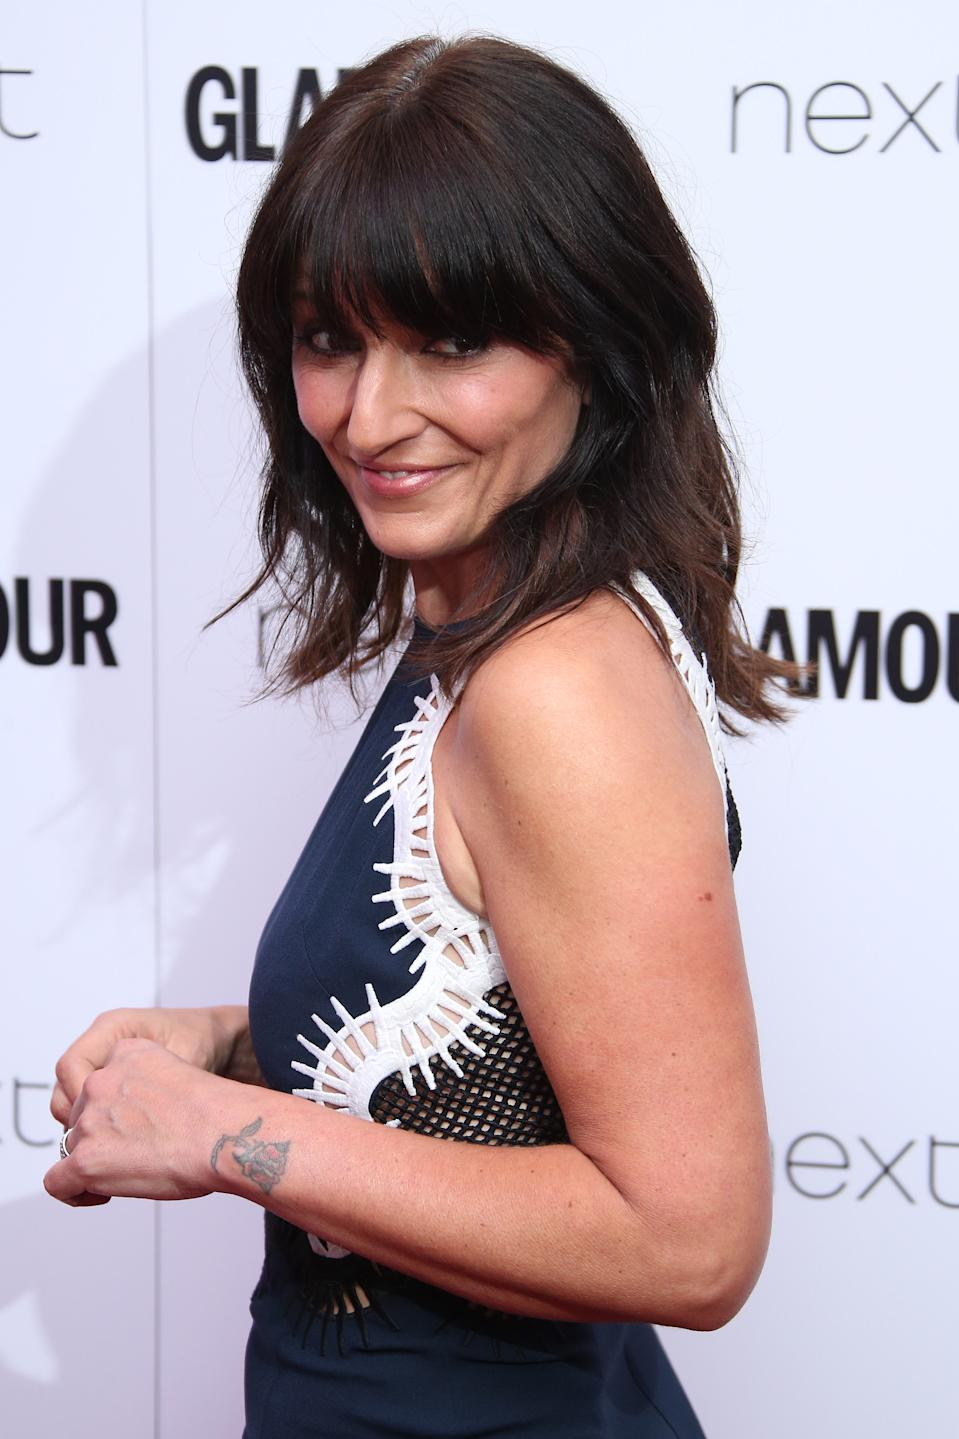 Davina McCall poses for photographers upon arrival at the Glamour Woman of the Year Awards in London, Tuesday, June 7, 2016. (Photo by Joel Ryan/Invision/AP)